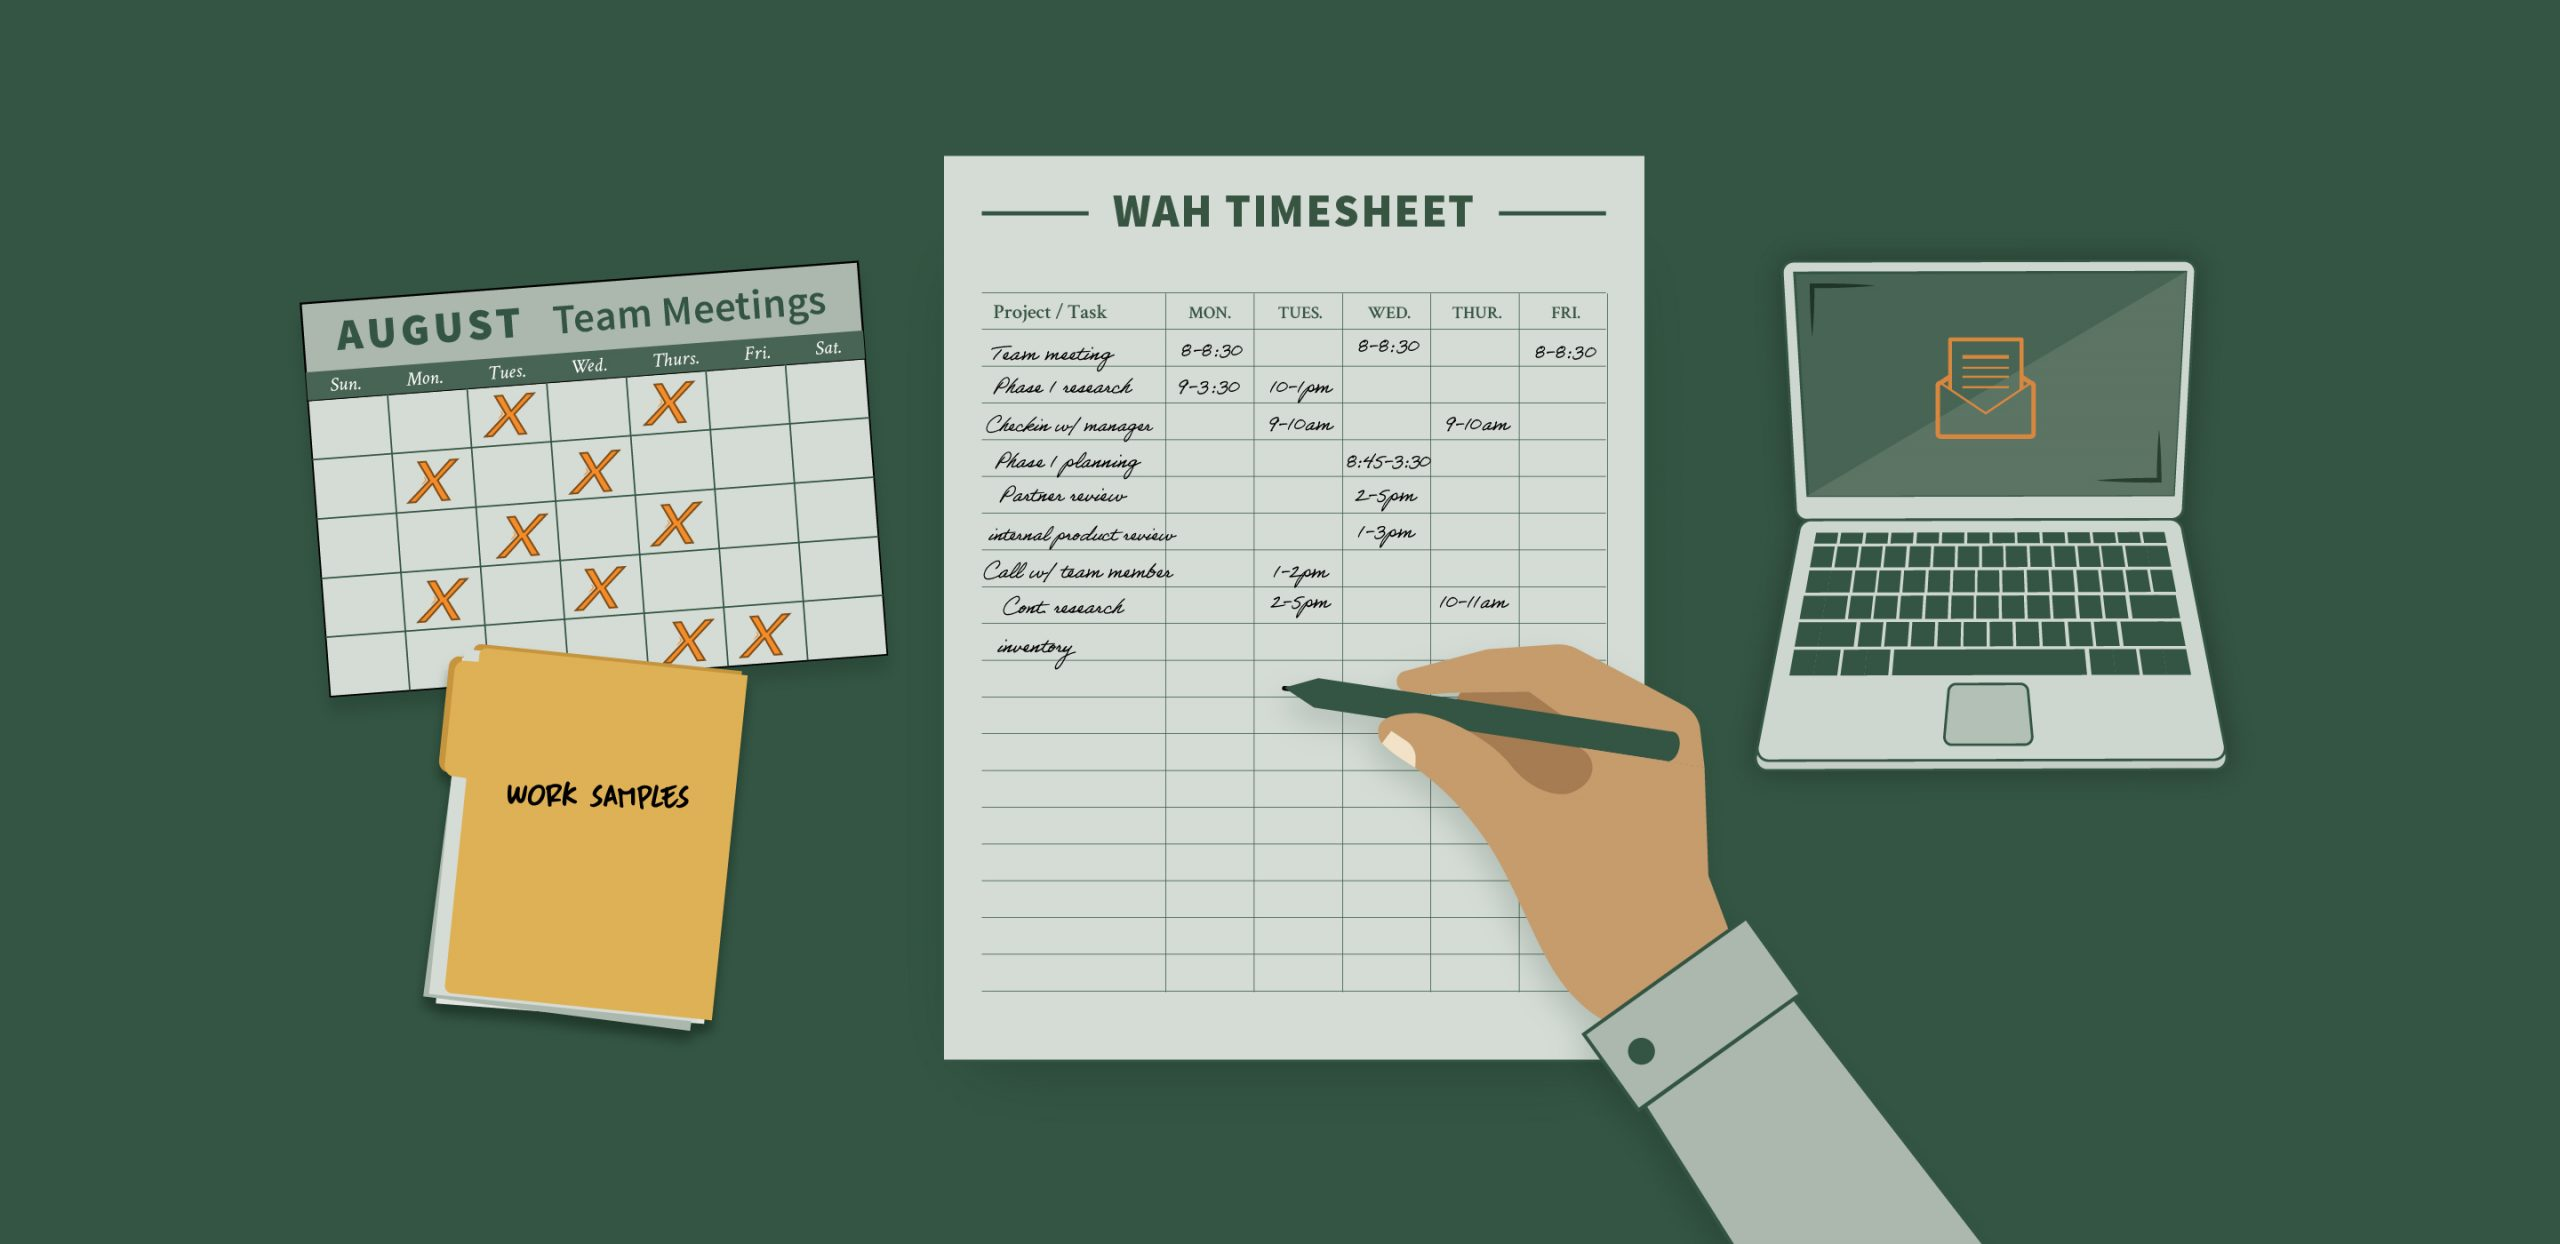 Work at home timesheet requirements for far part 31 compliance